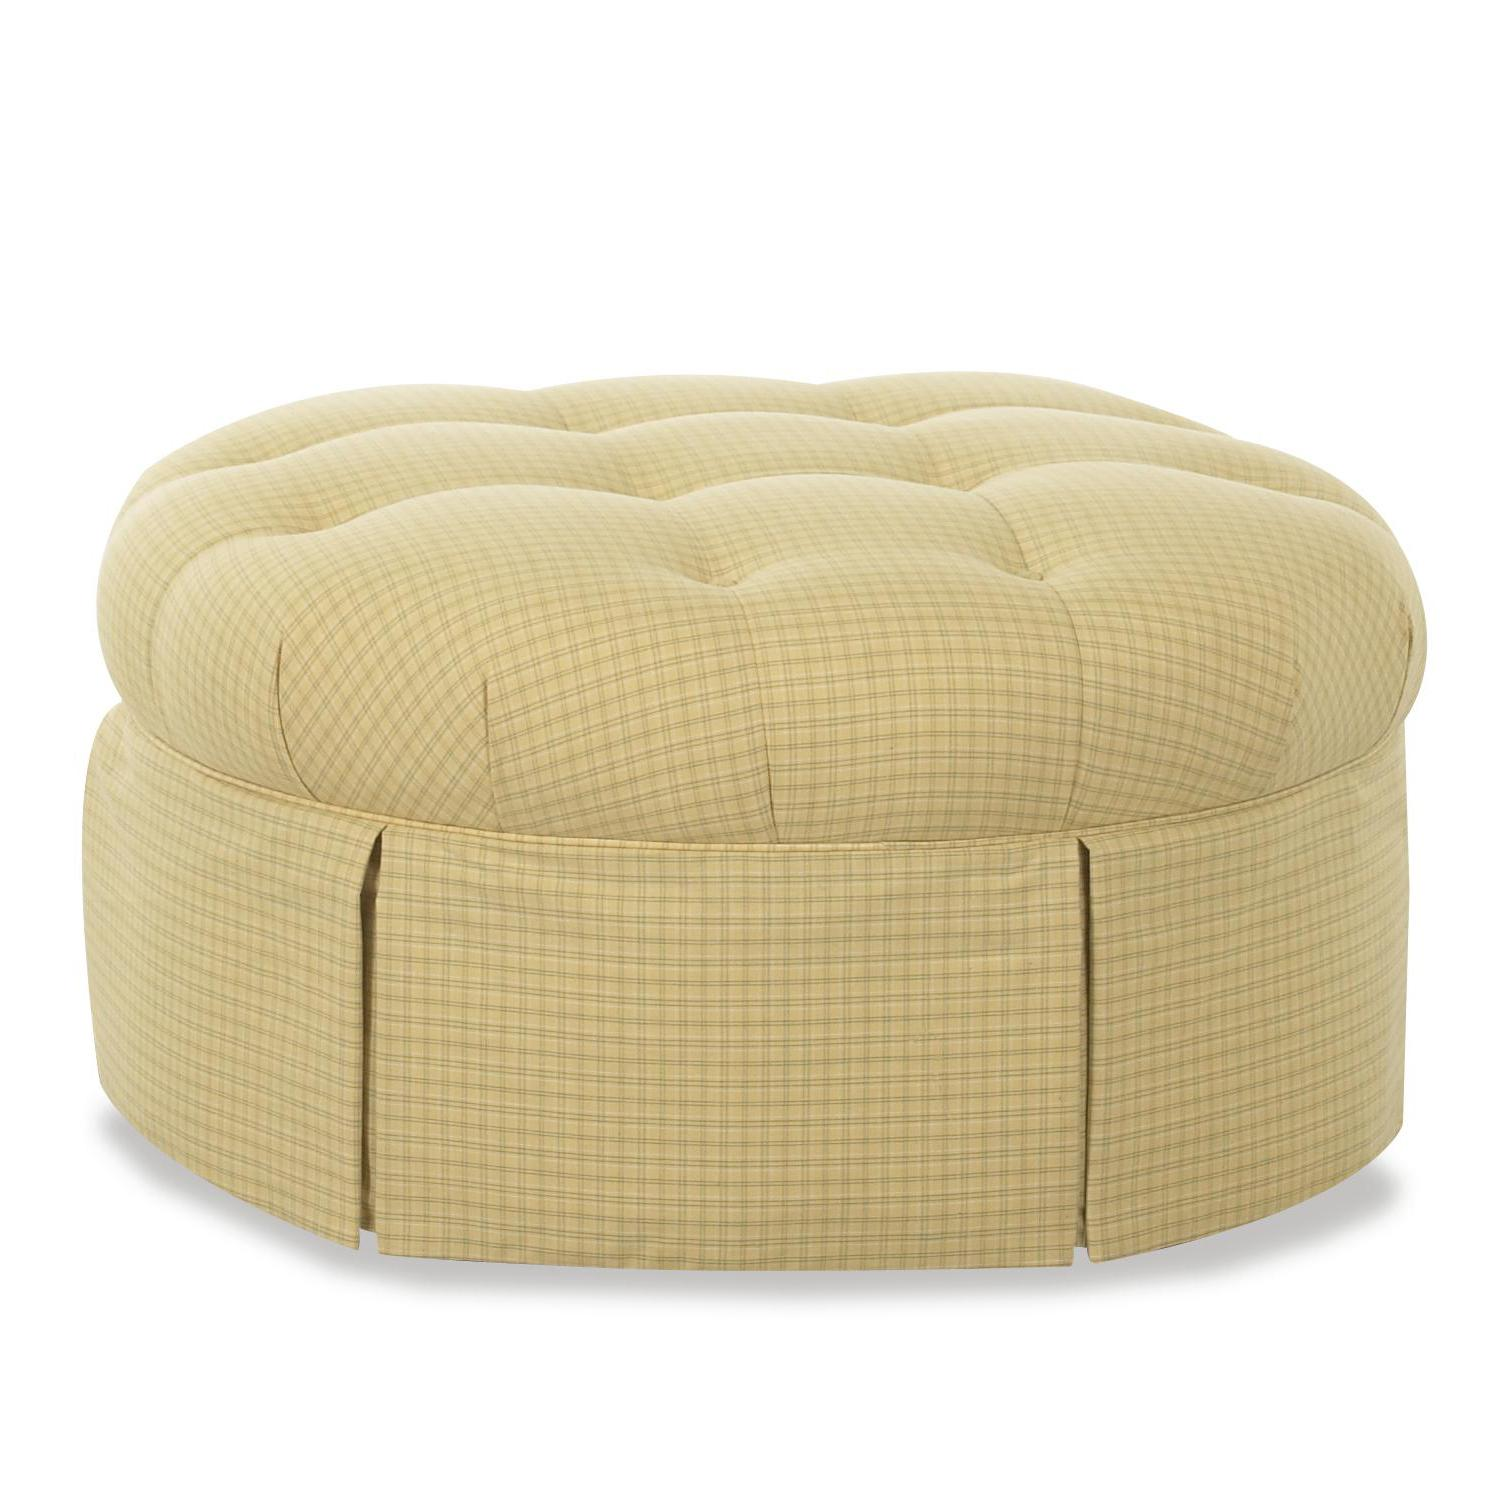 Klaussner Chairs and Accents Jessica Ottoman - Item Number: 56500OTTO